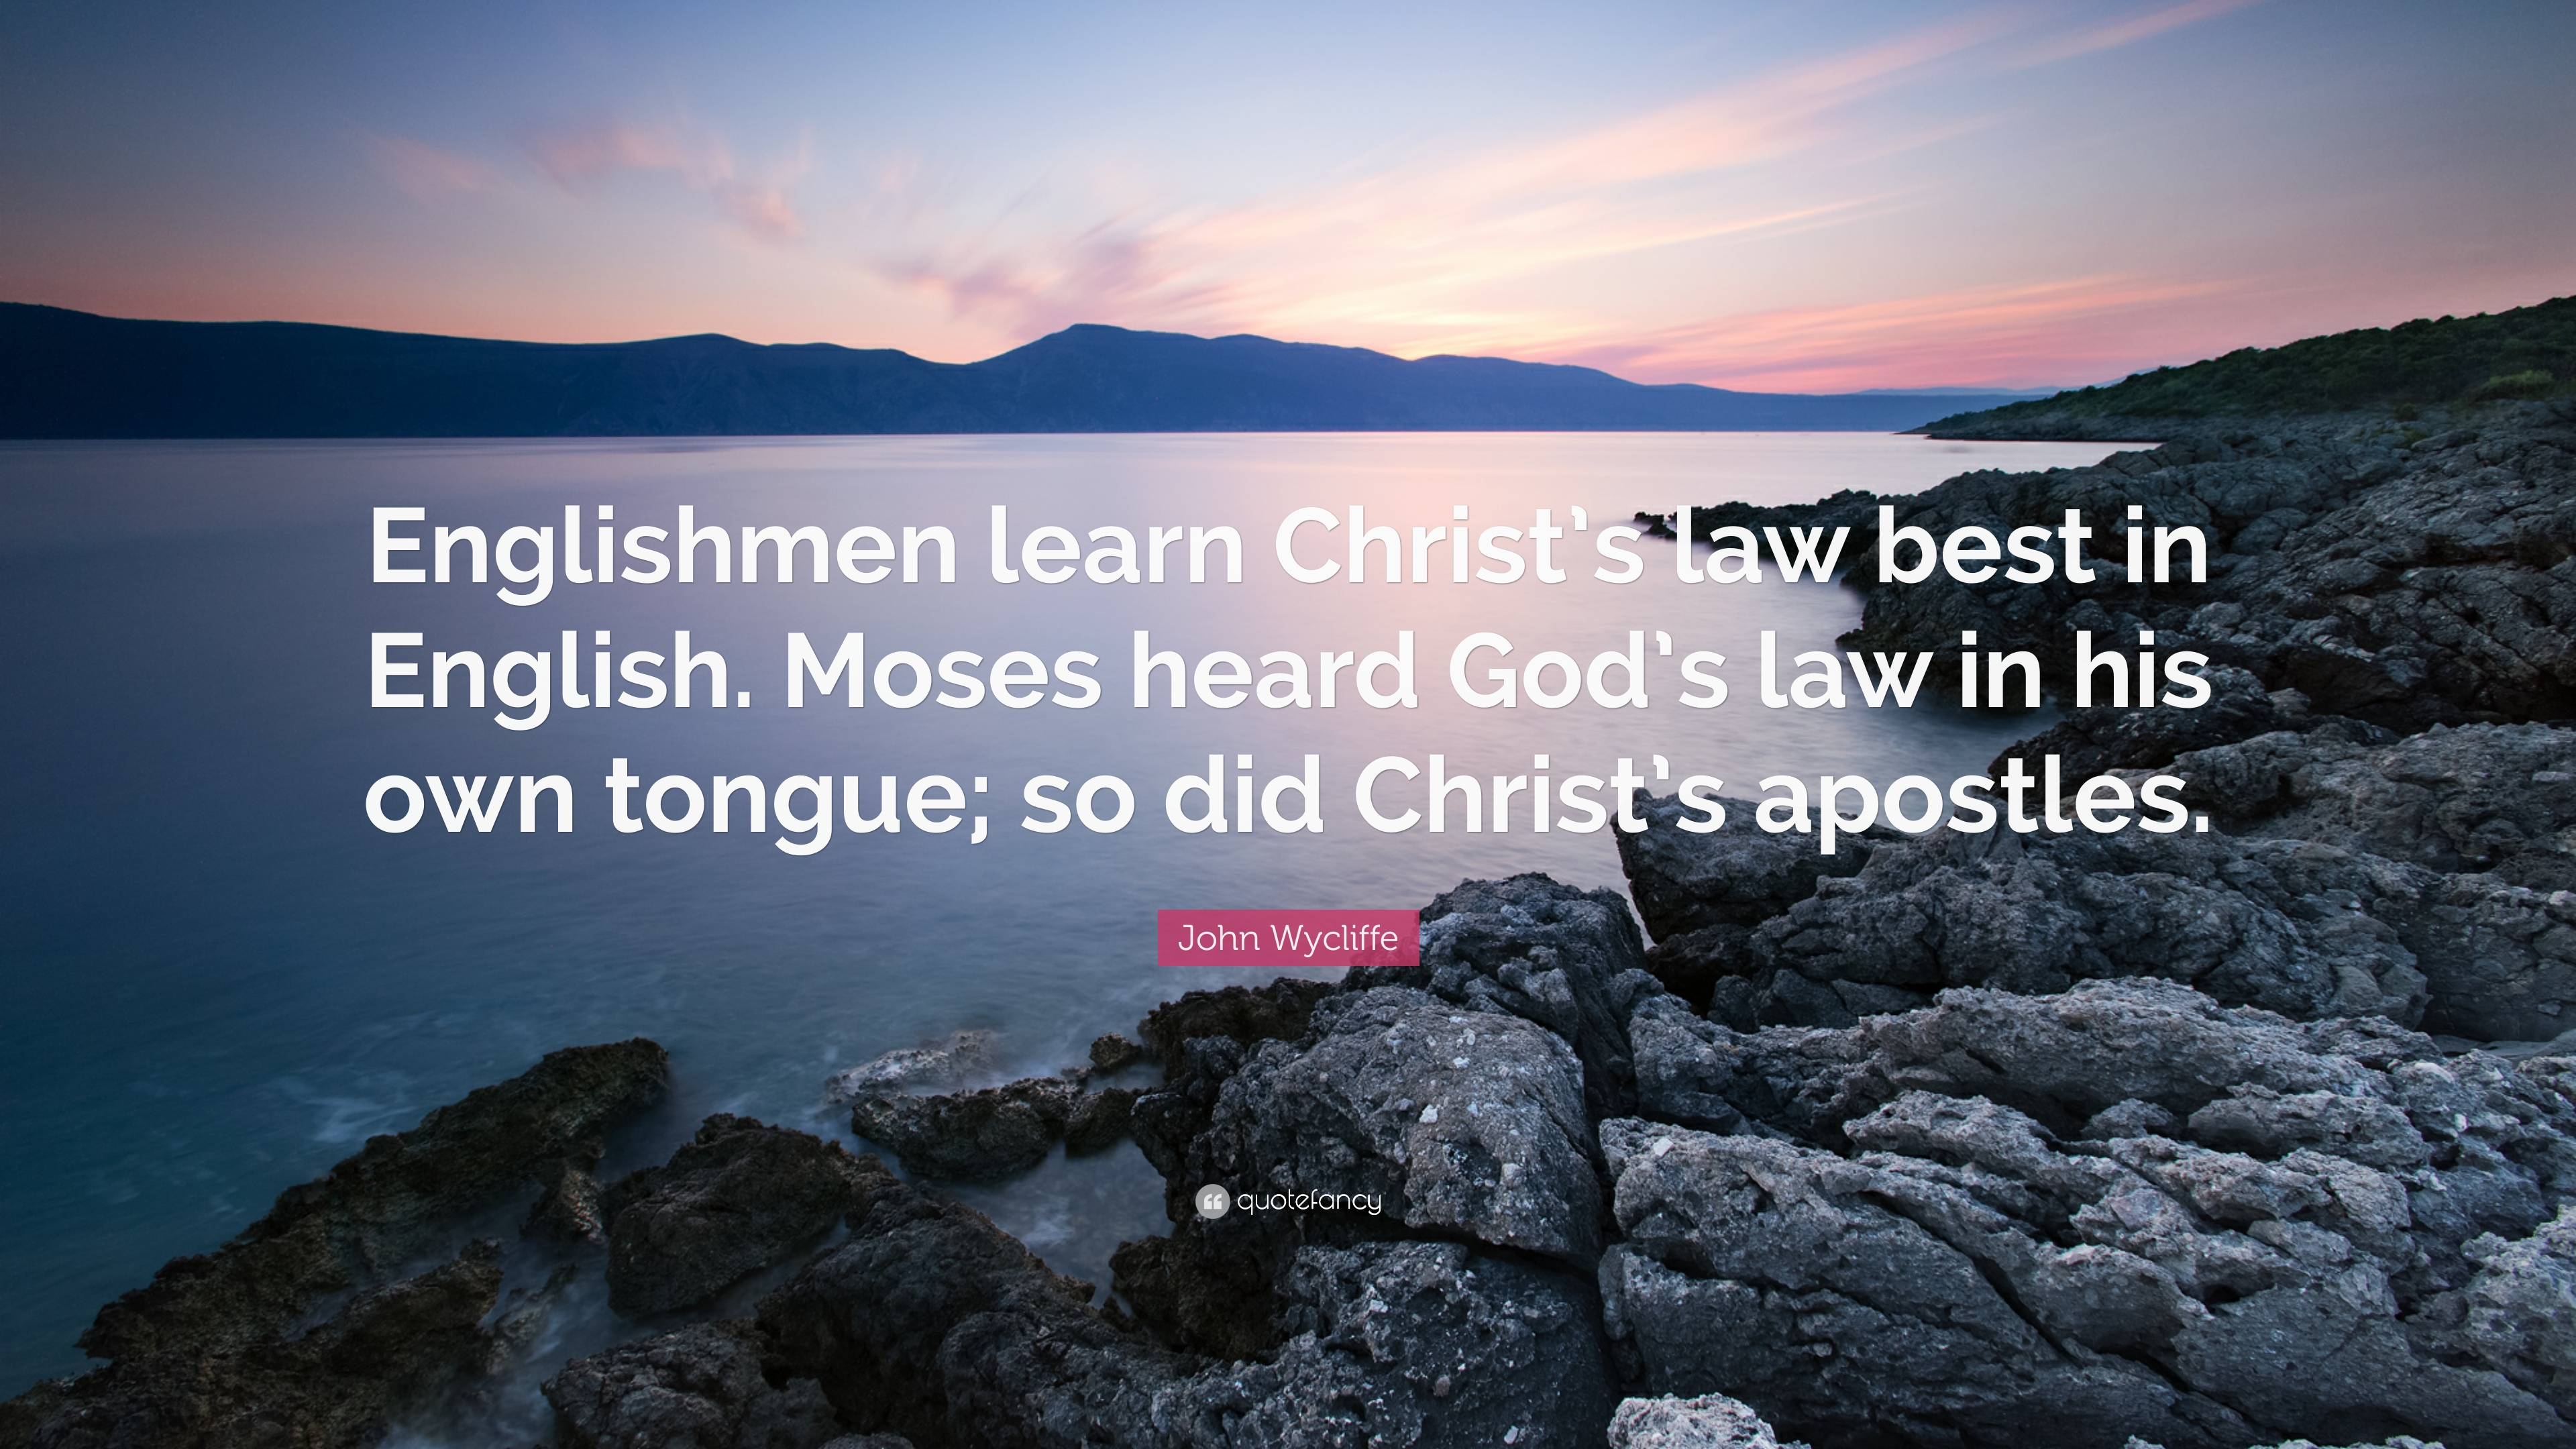 """John Wycliffe Quote: """"Englishmen learn Christ's law best in English"""